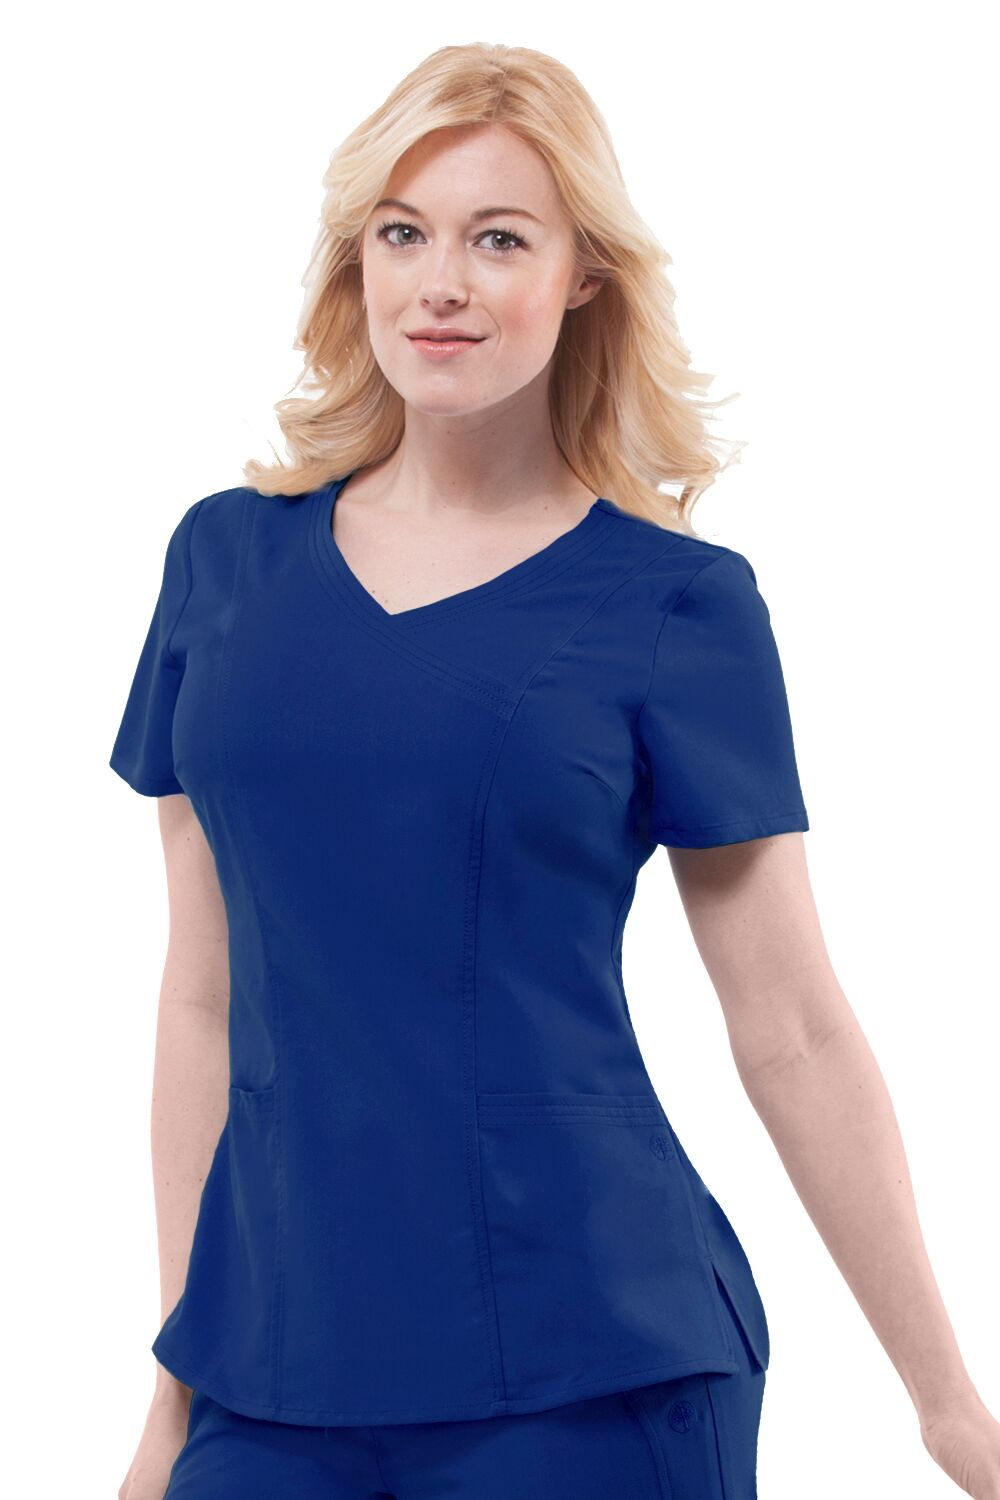 Mock crossover w/ triple needle stitching Seaming for superior fit 2 Patch pockets Sizes: XS-3X